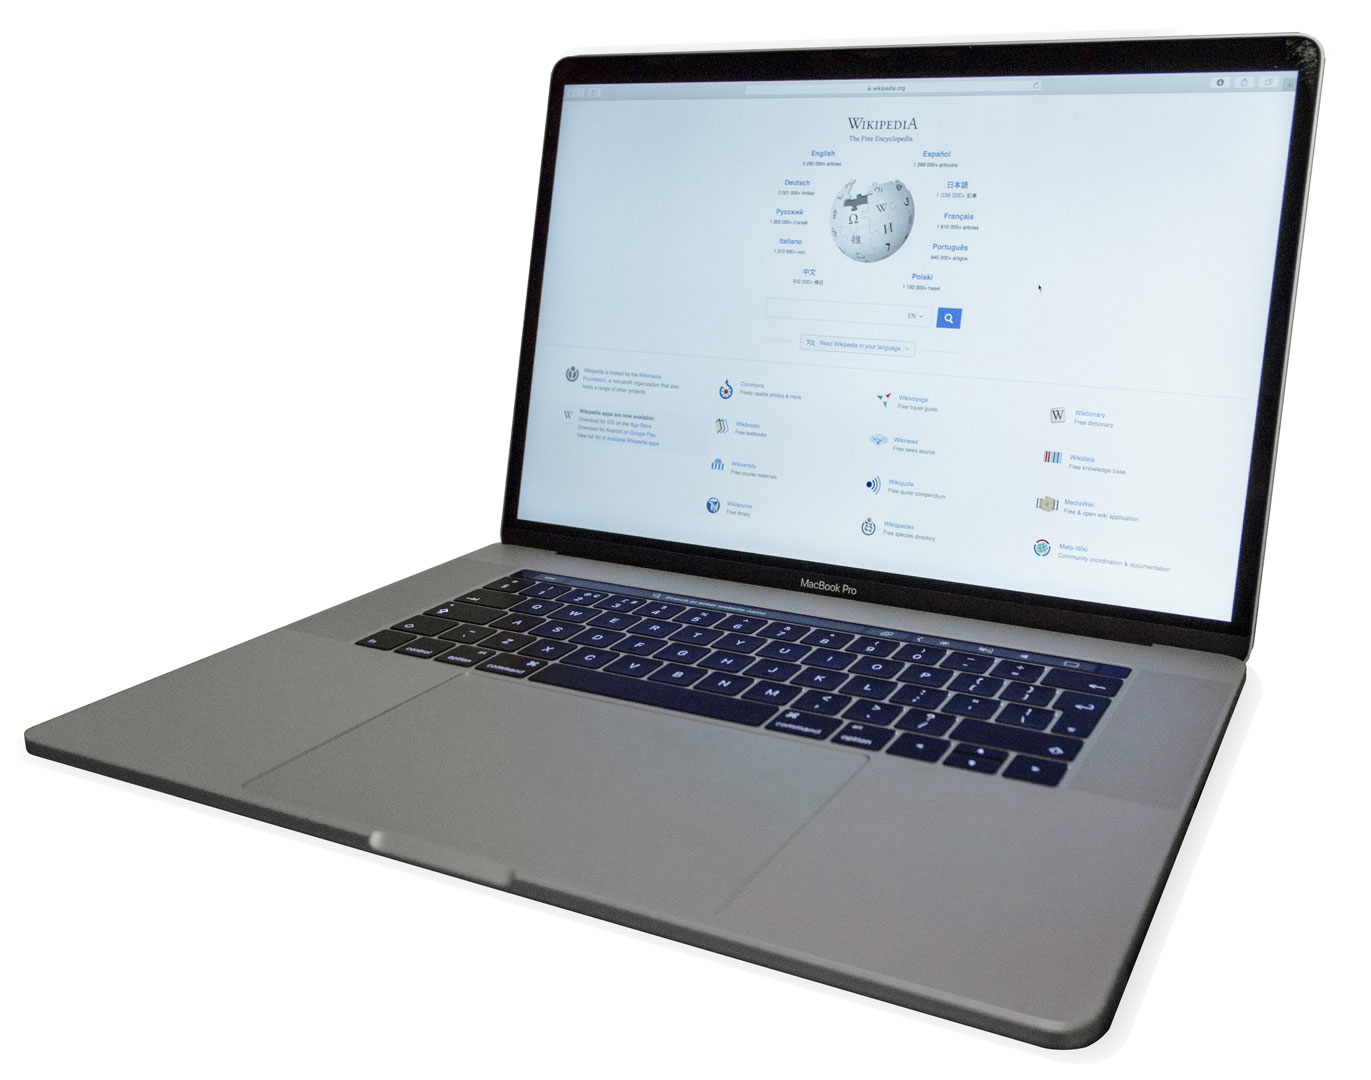 Macbook pro a1278 drivers windows 7 64 bit